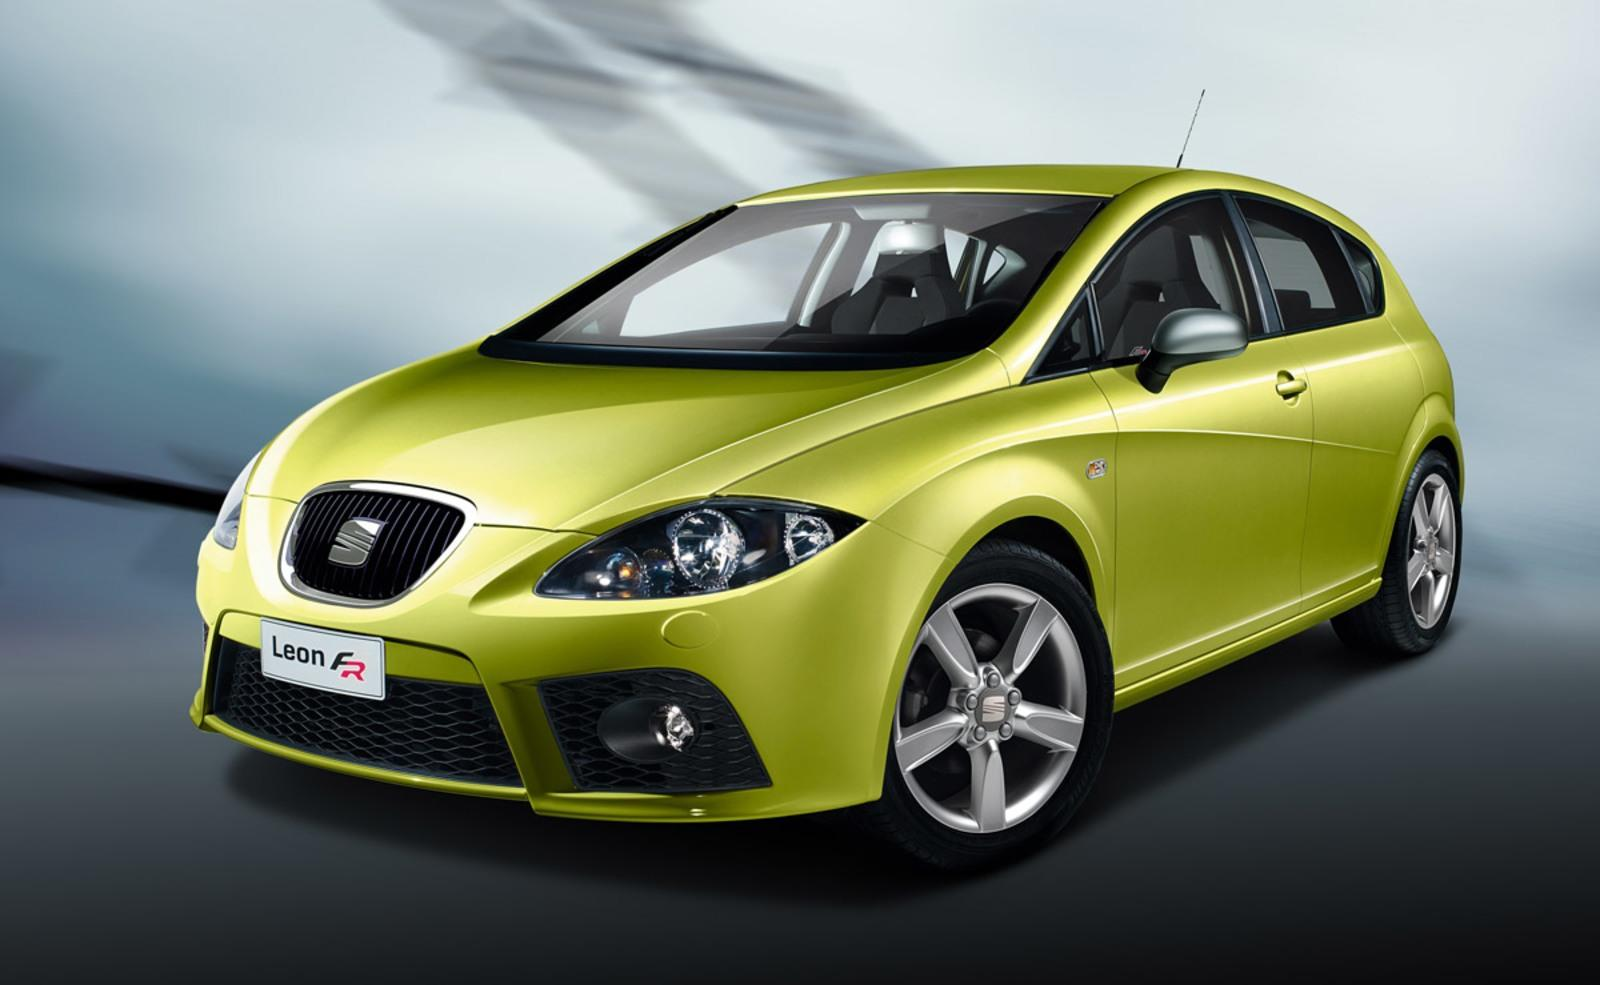 2008 seat leon fr550 review top speed. Black Bedroom Furniture Sets. Home Design Ideas